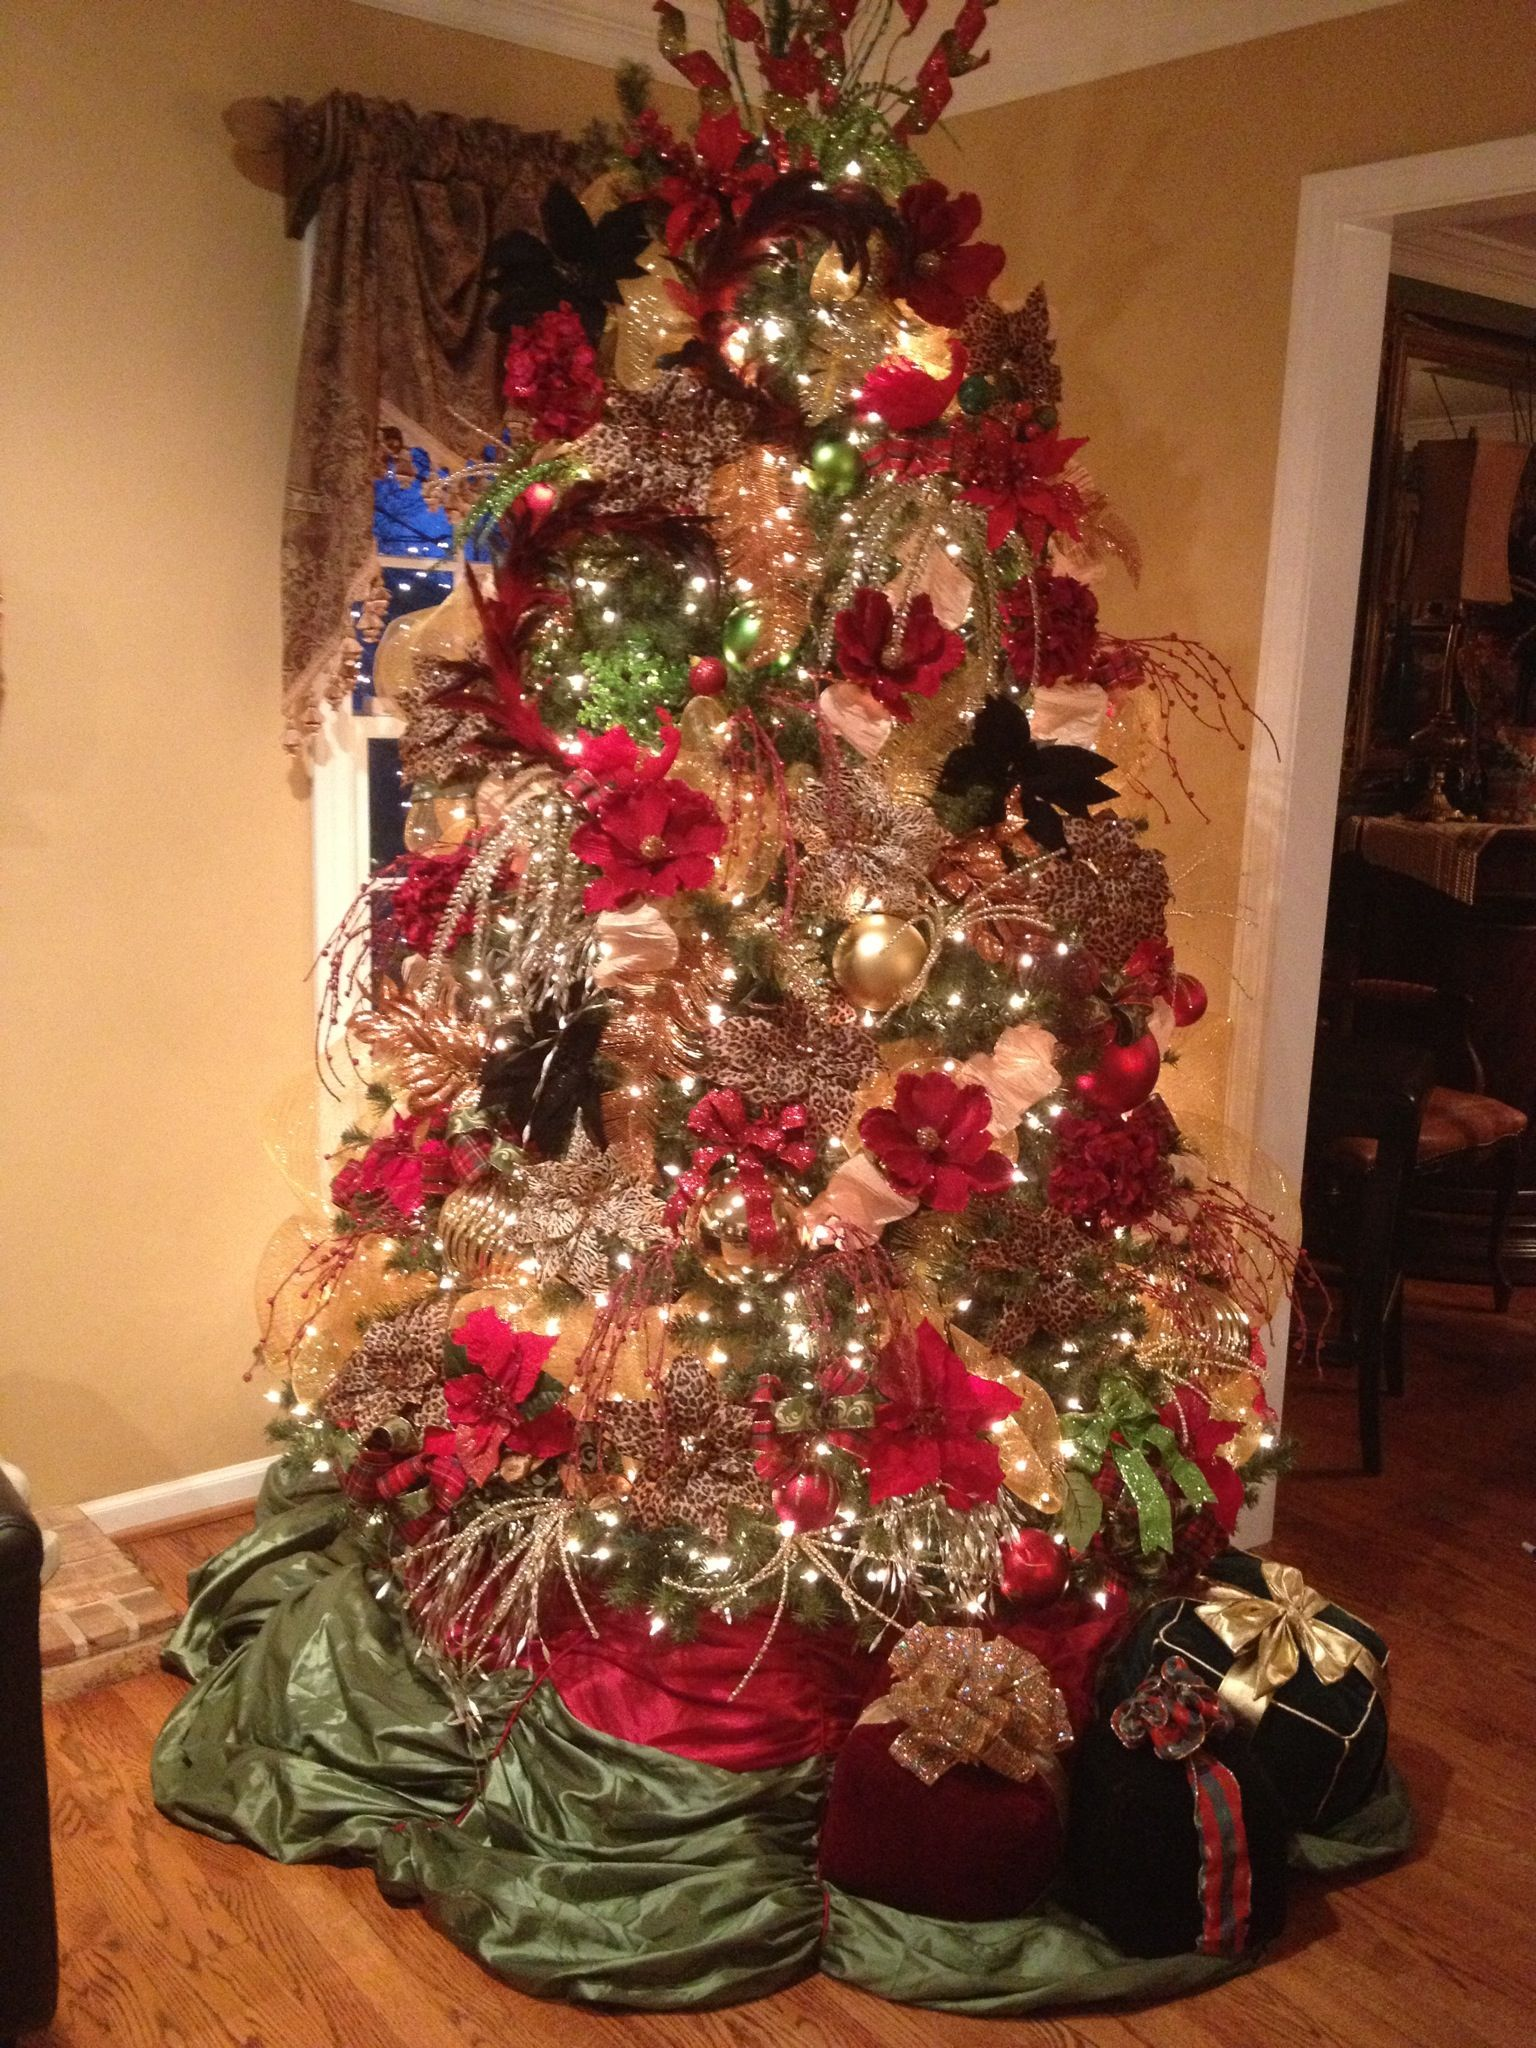 Christmas Tree With Red Roses And Love Birds Christmas Christmas Tree Holiday